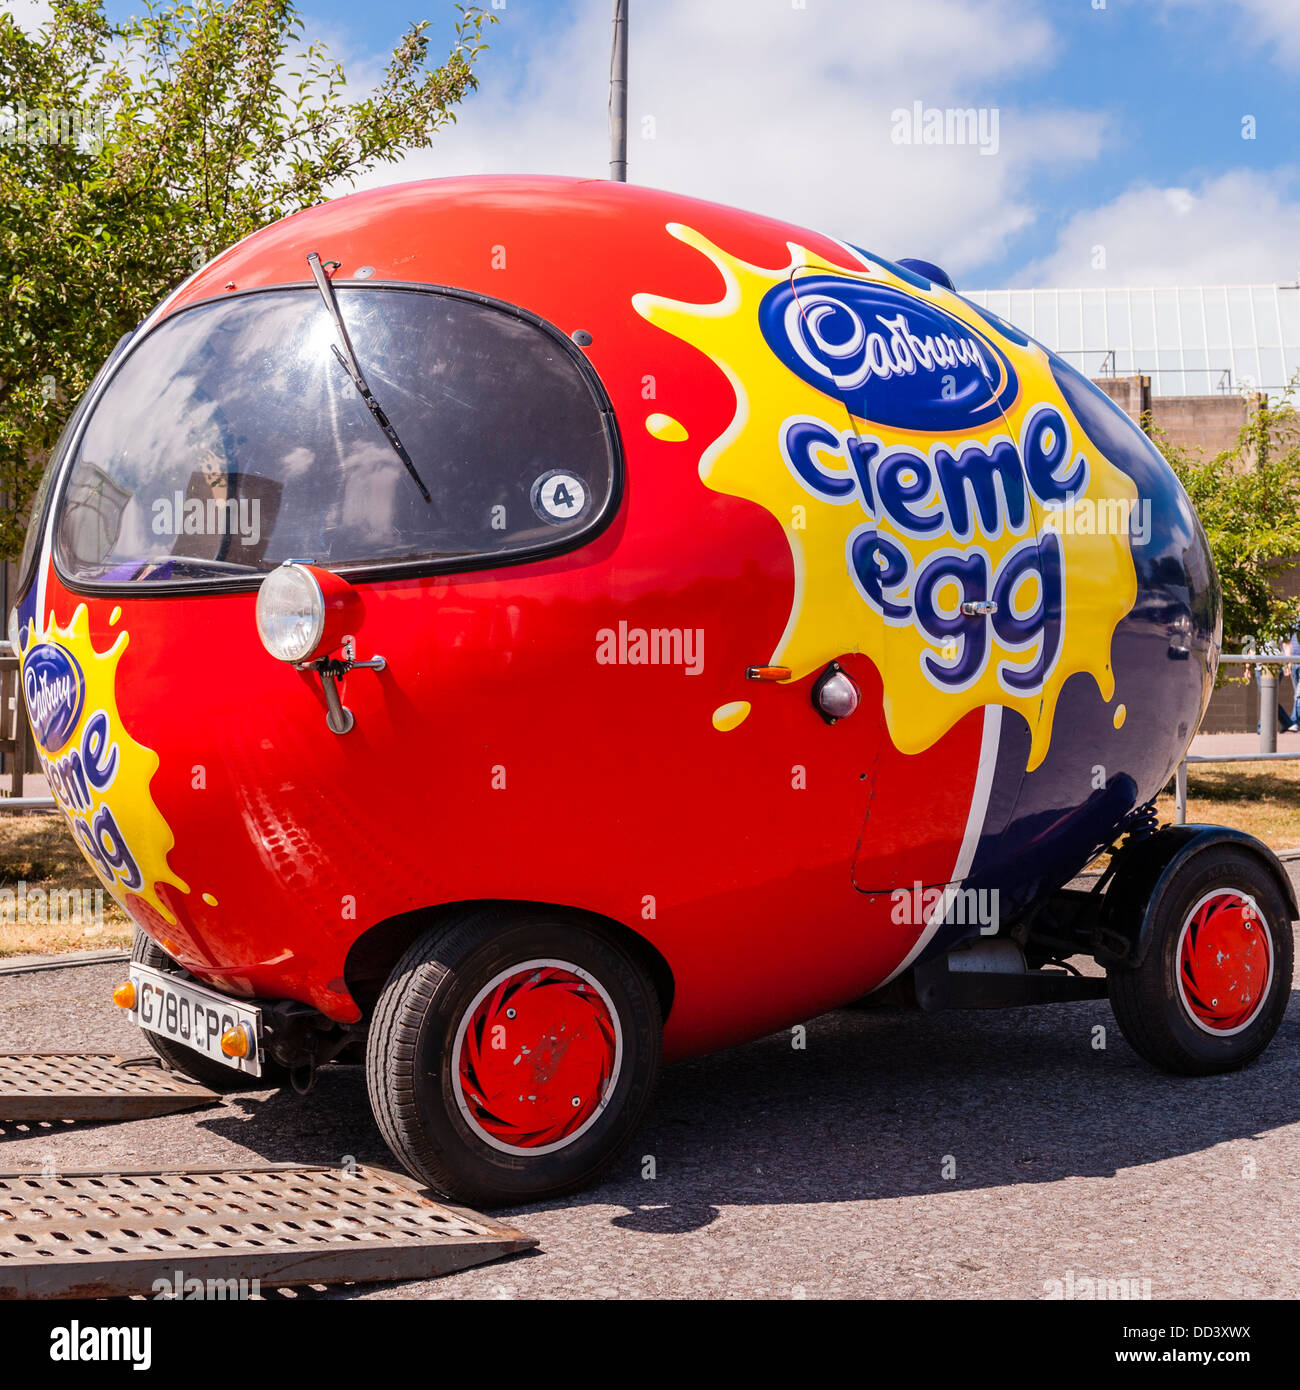 funny cars uk stock photos funny cars uk stock images alamy